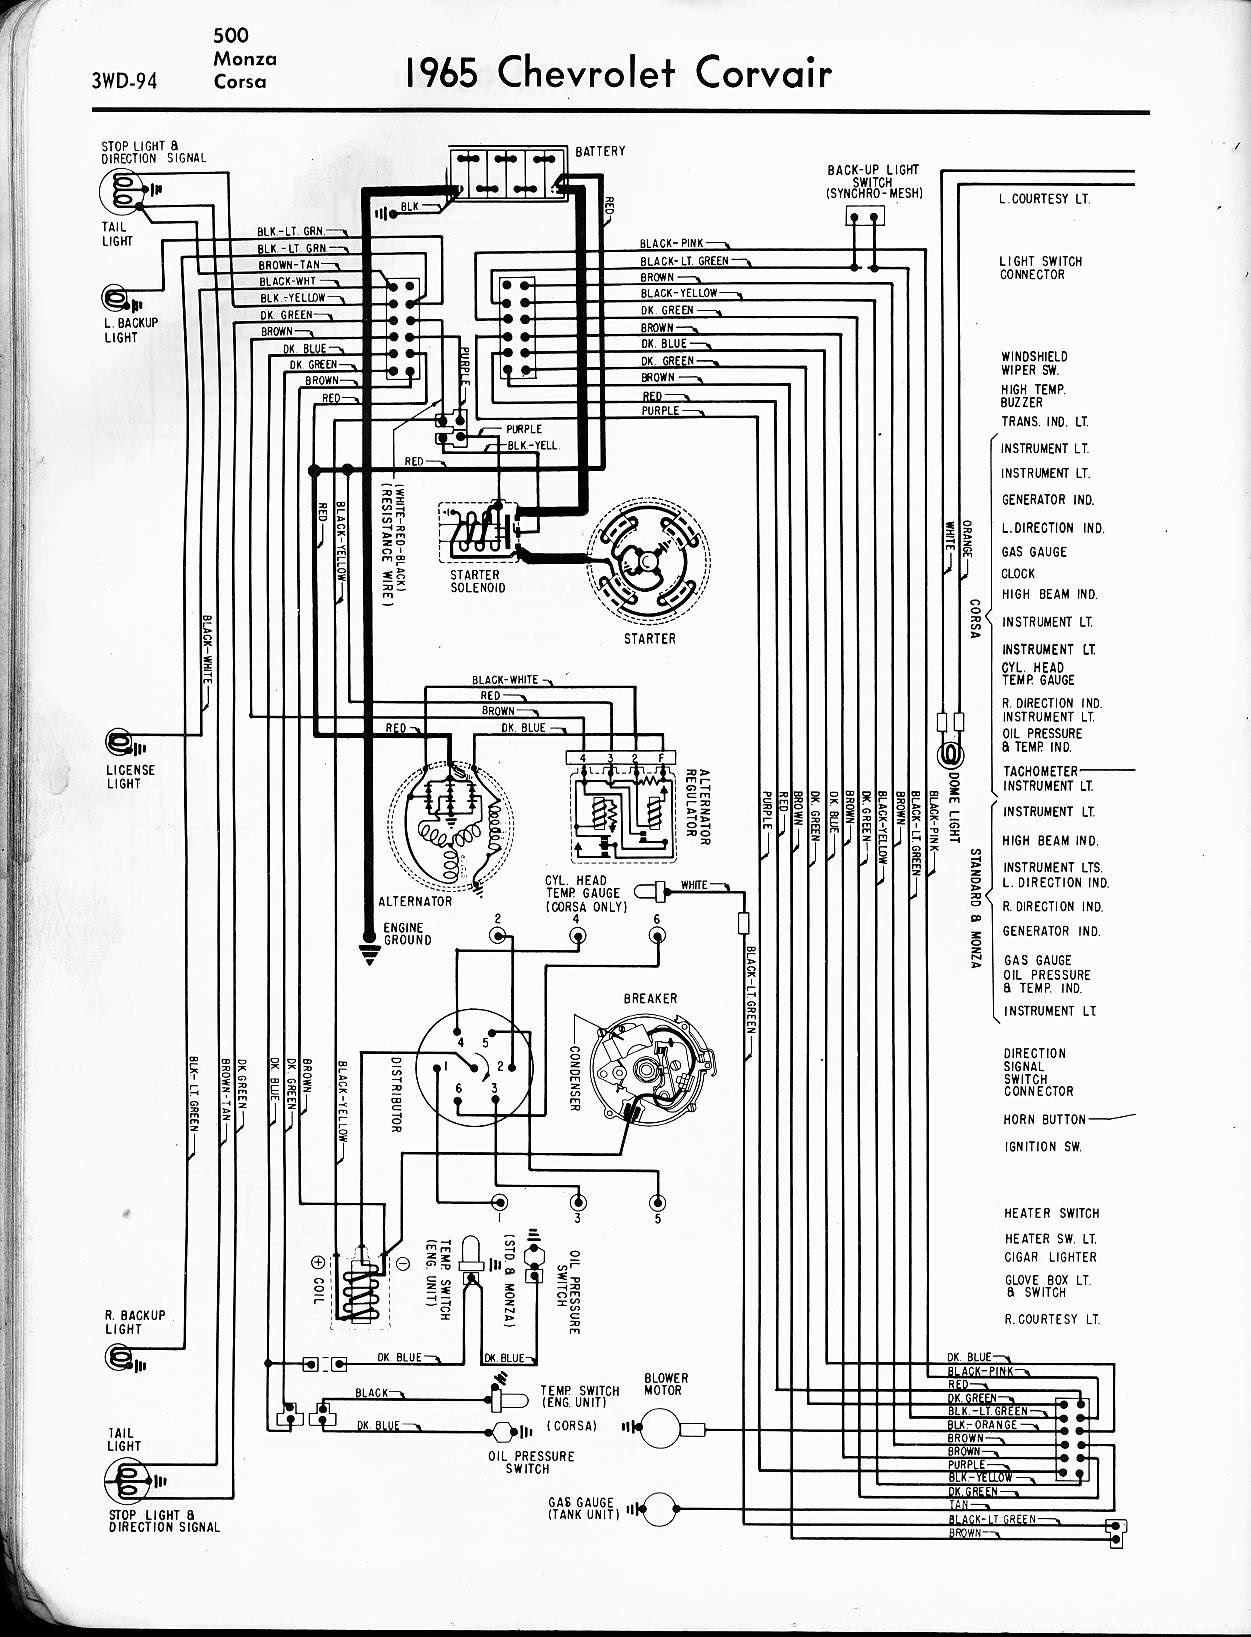 1968 Bel Air Wiper Wiring Diagram Free Picture For Solo Baric Wiring Diagram Pipiing Yenpancane Jeanjaures37 Fr